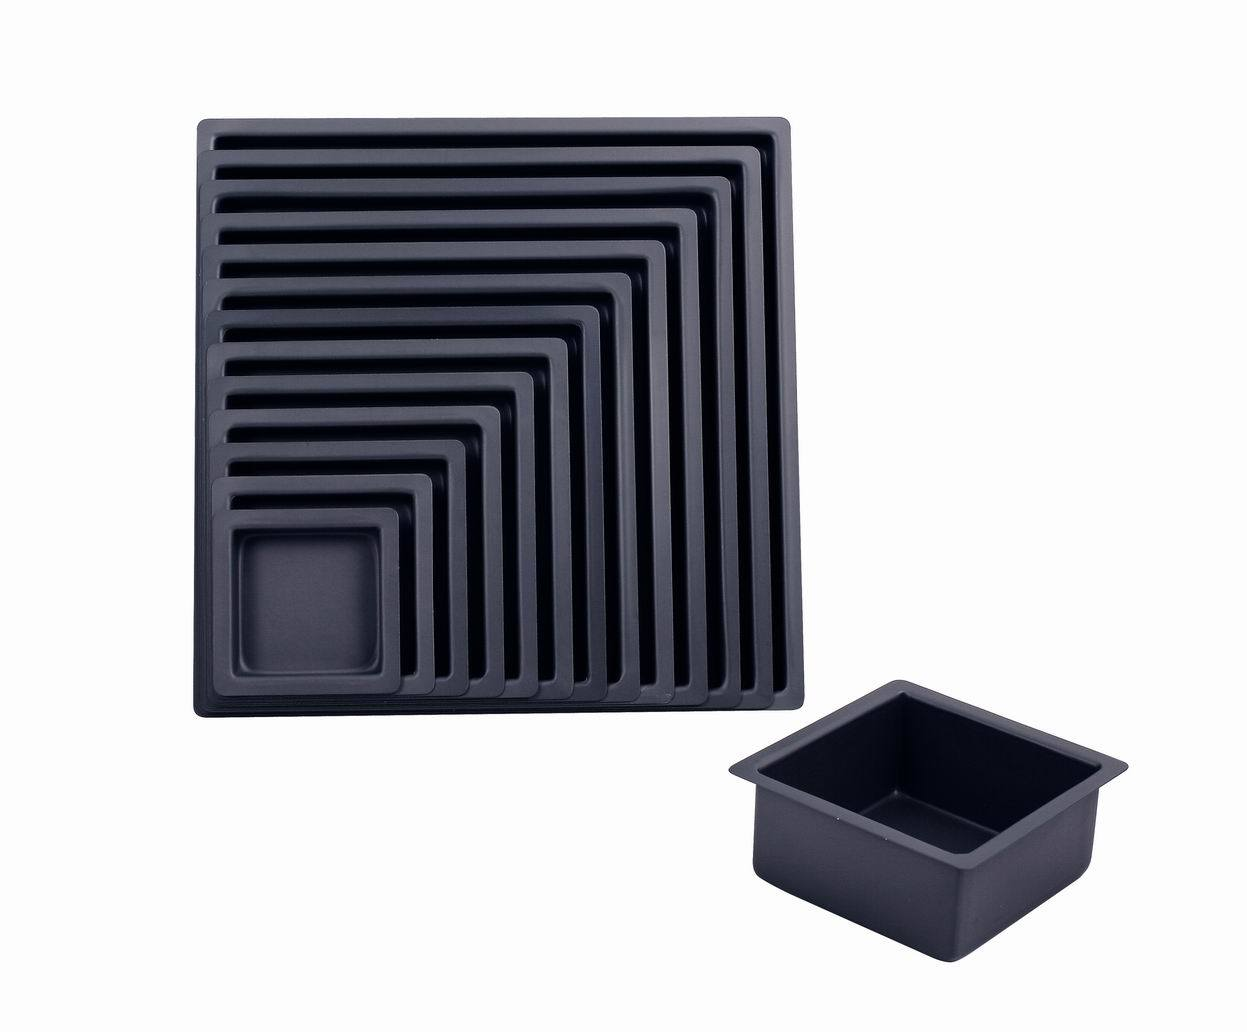 Bakeware Aluminum Hard Anodized Square Cake Pan (MY2244H-MY2256H)